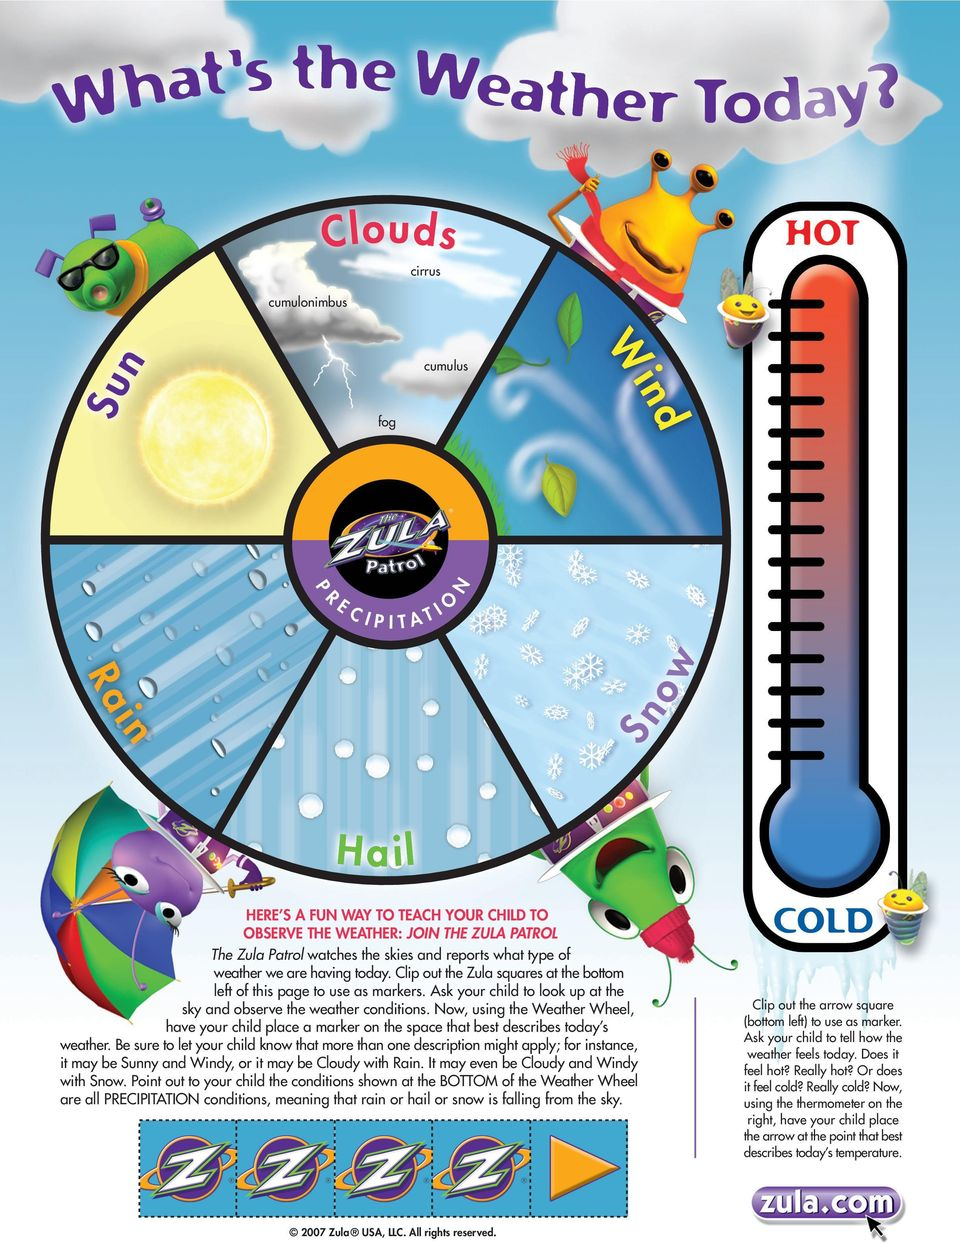 Now, using the Weather Wheel, have your child place a marker on the space that best describes today s weather.